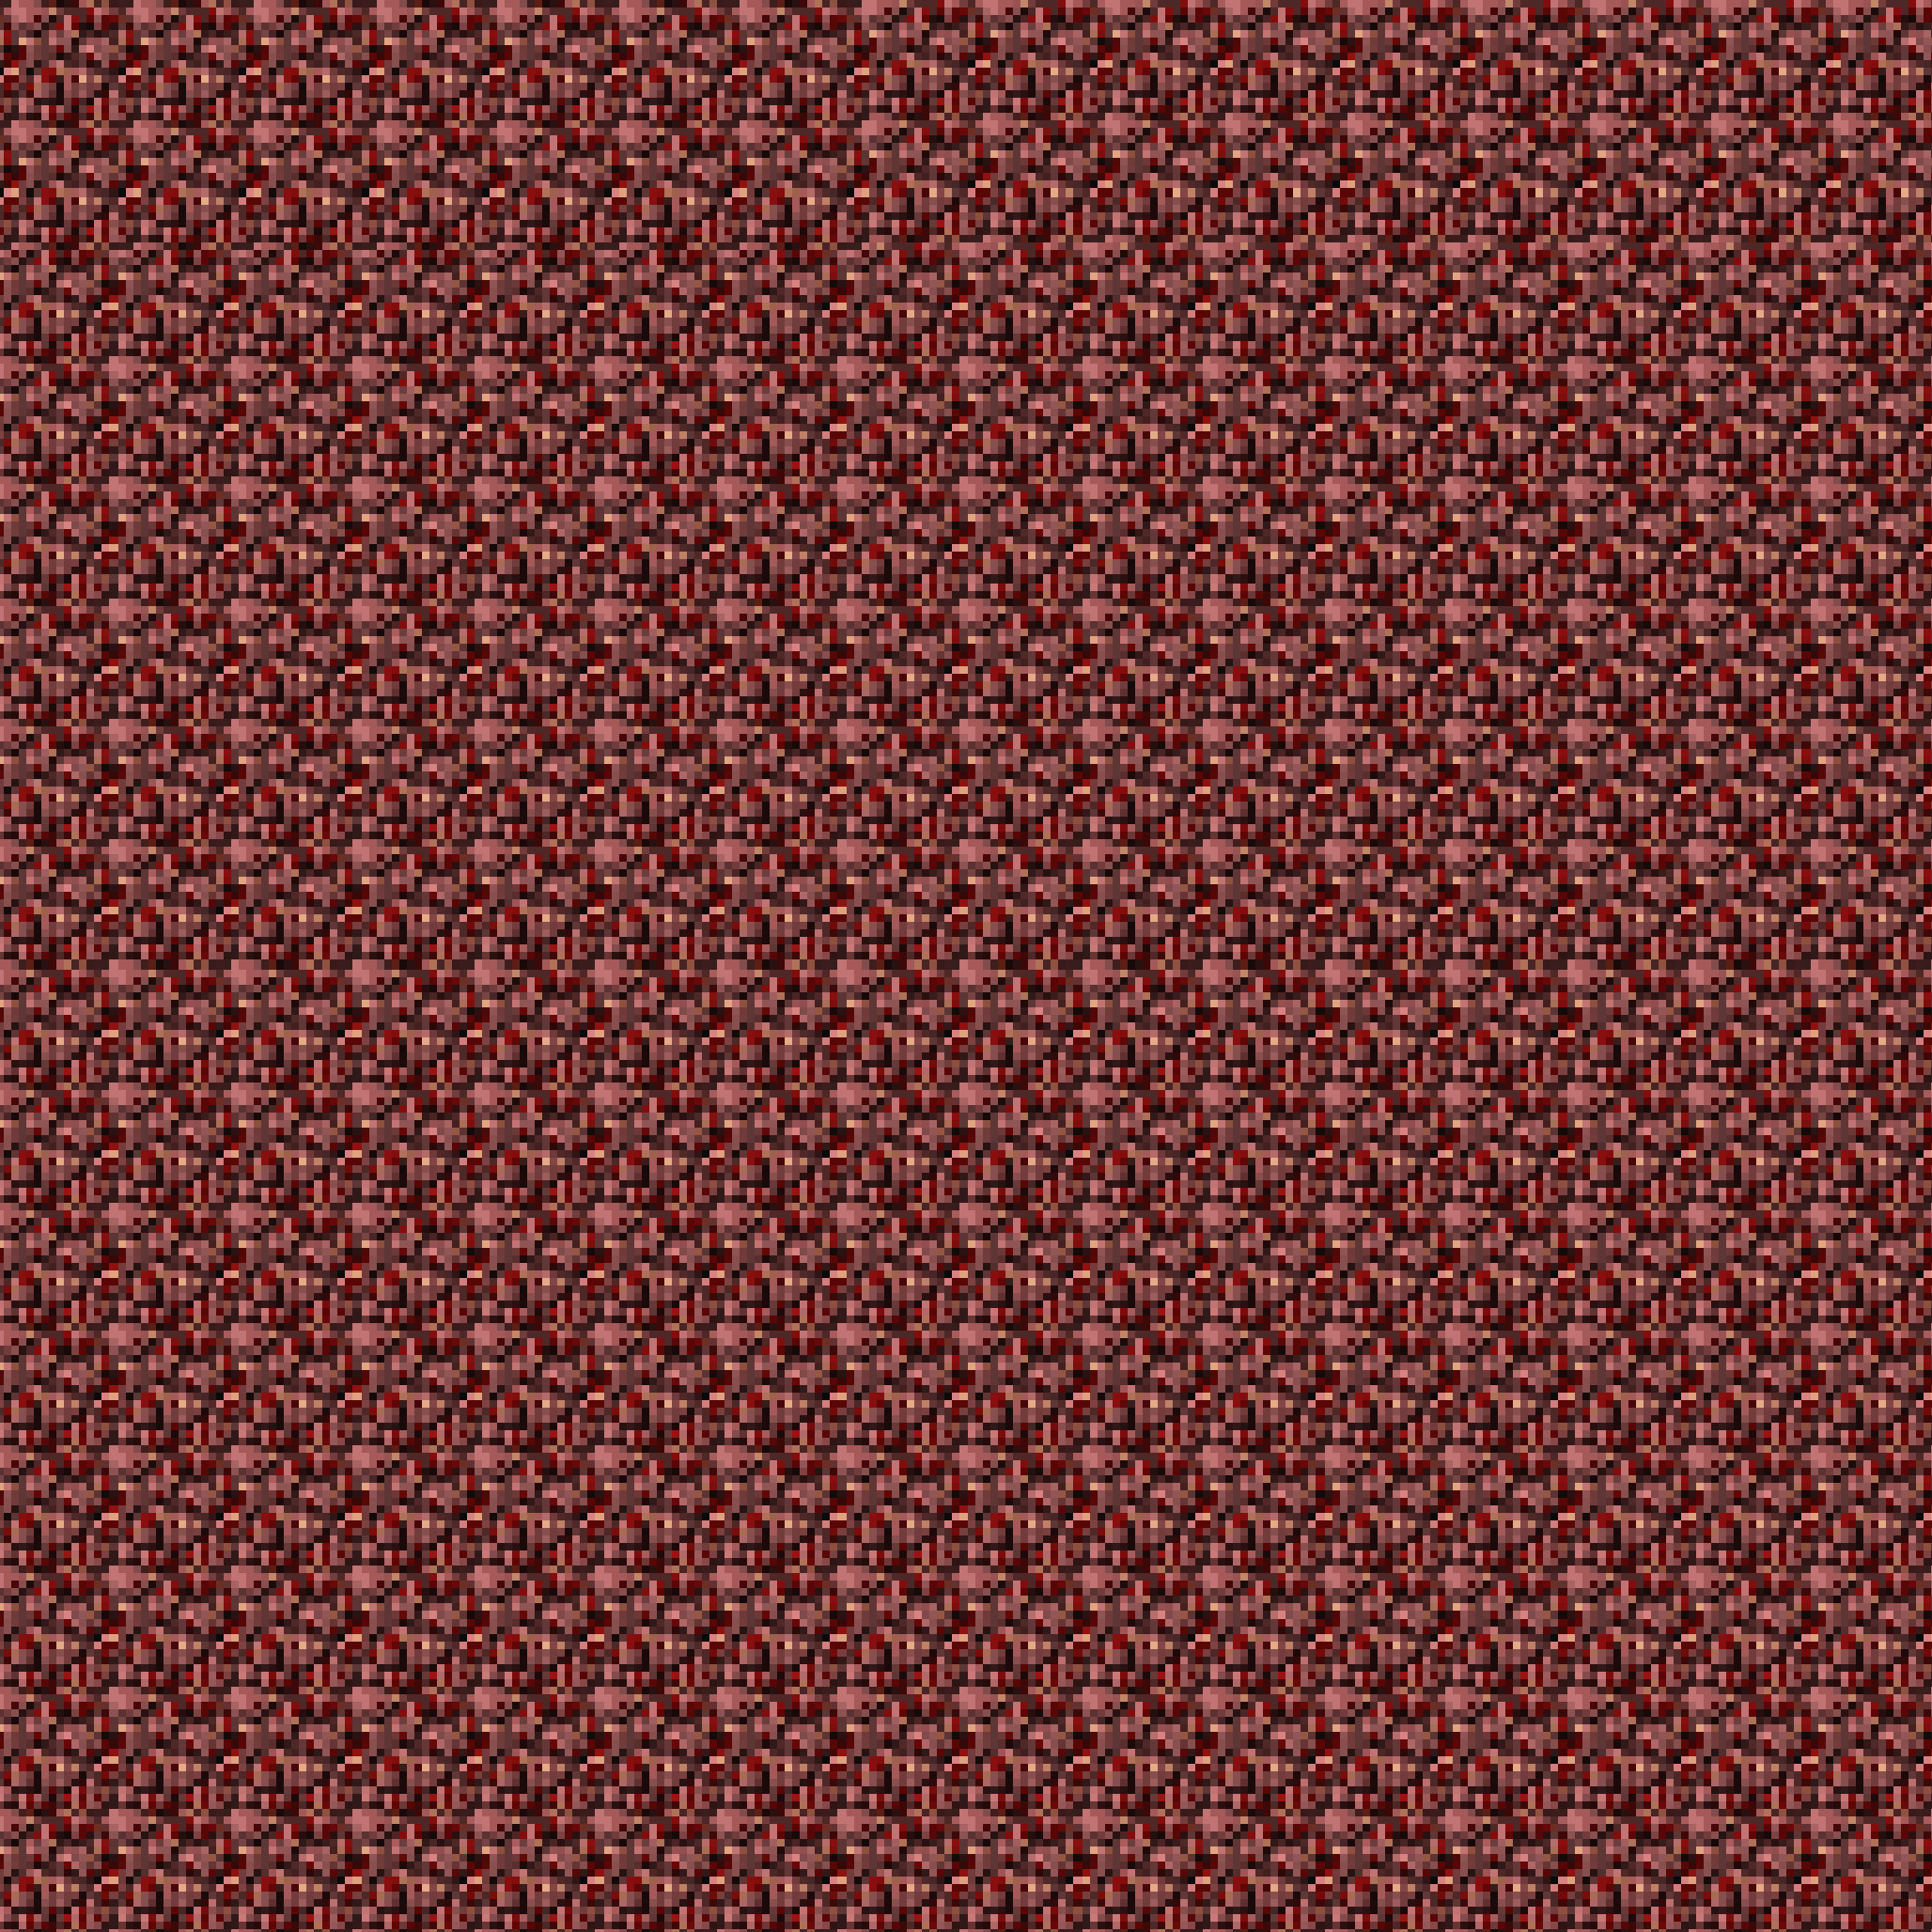 Wonderful Wallpaper Minecraft Red - 904225-minecraft-diamond-background-2056x2056-cell-phone  You Should Have_689557.jpg